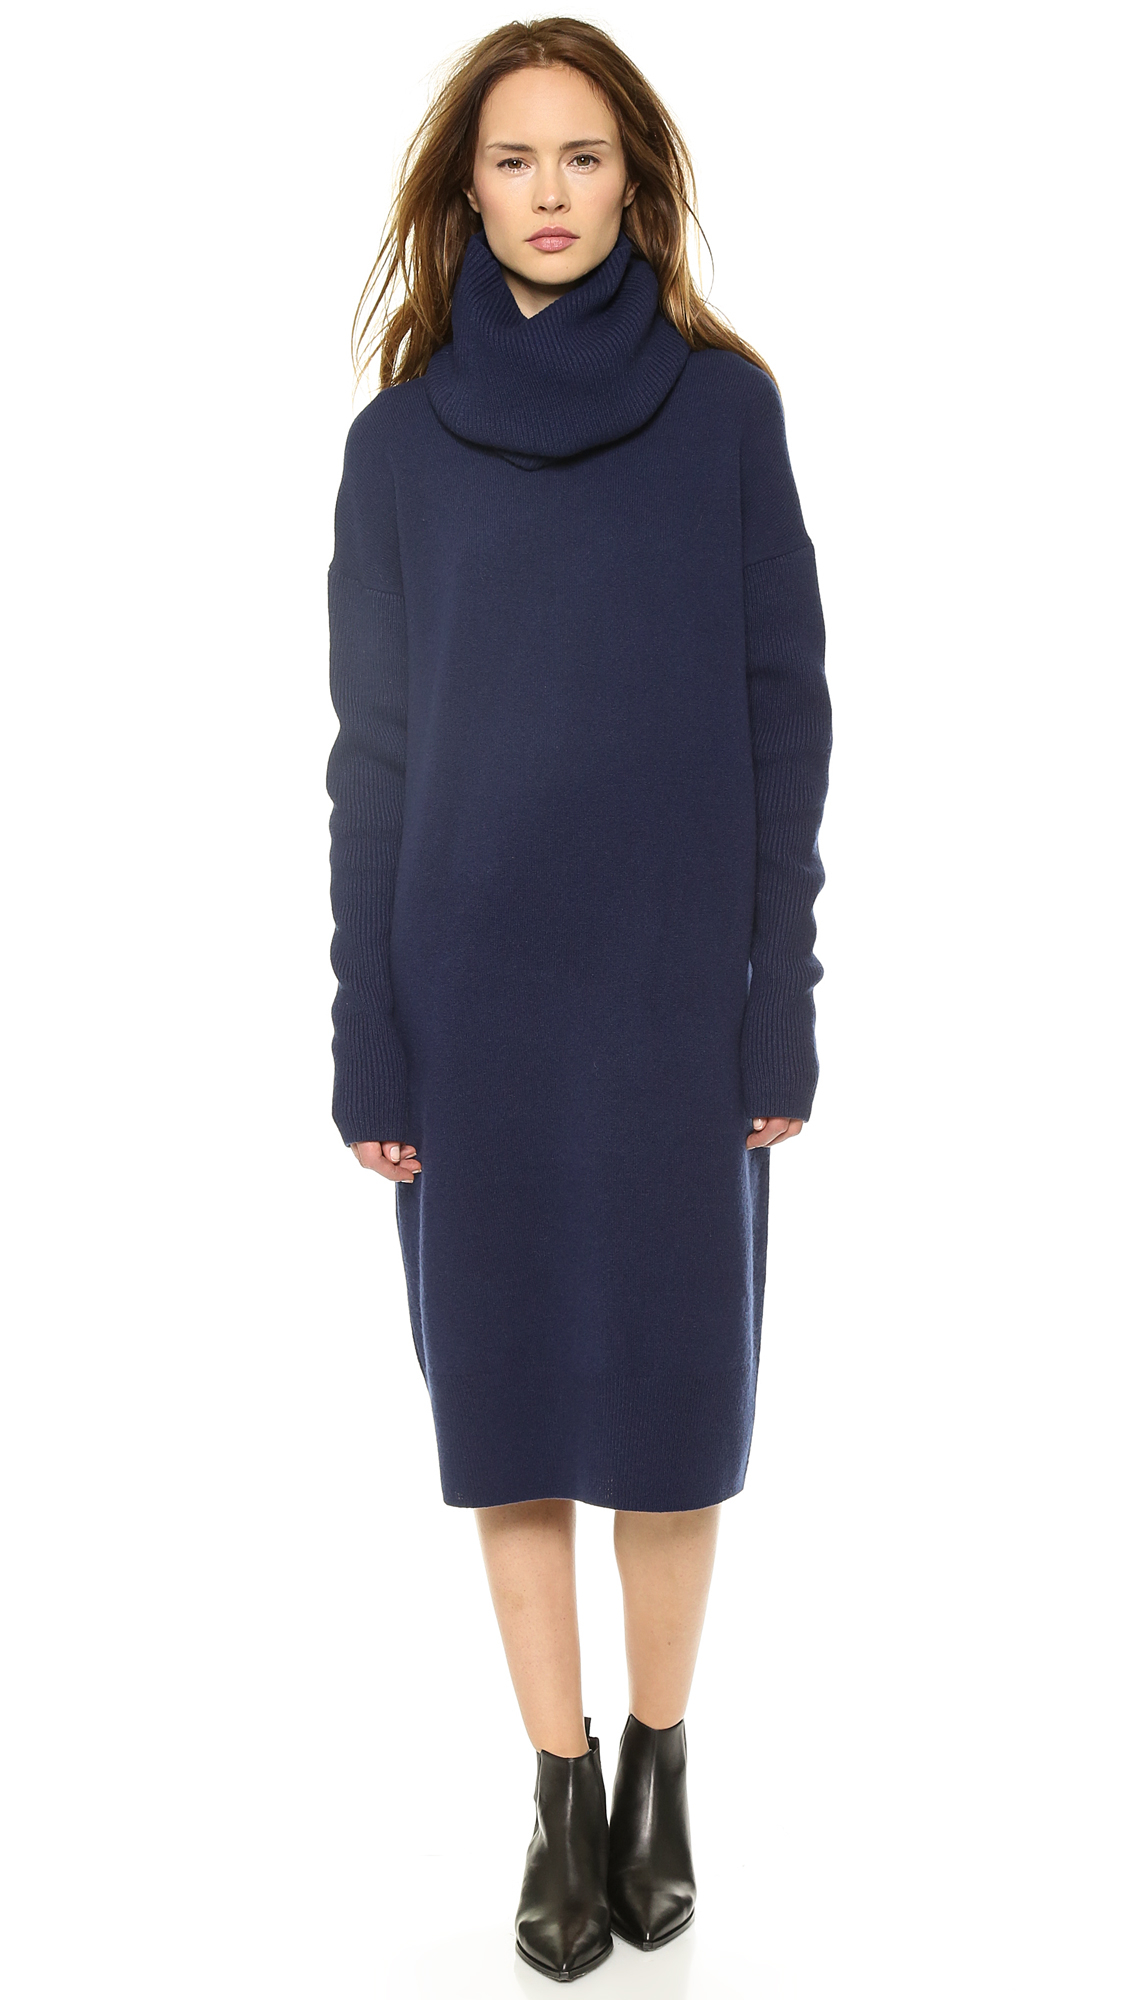 Acne studios Dita L Wool Sweater Dress Navy in Blue | Lyst